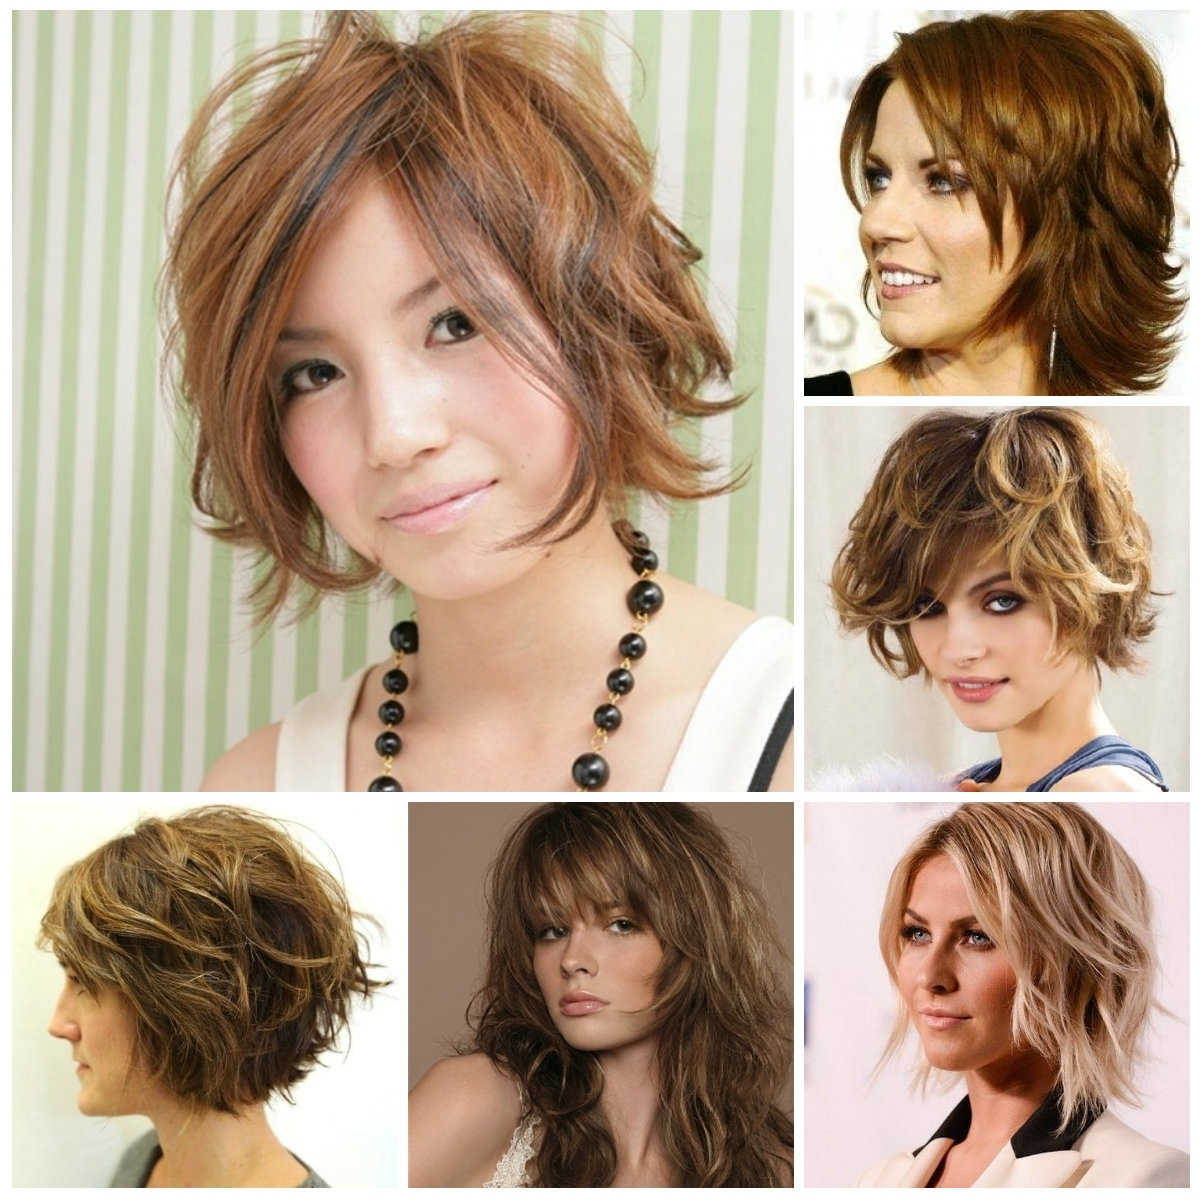 Pictures Of The Back Of Short Haircuts – Hairstyle For Women & Man For Well Known Short Shaggy Curly Hairstyles (View 5 of 15)